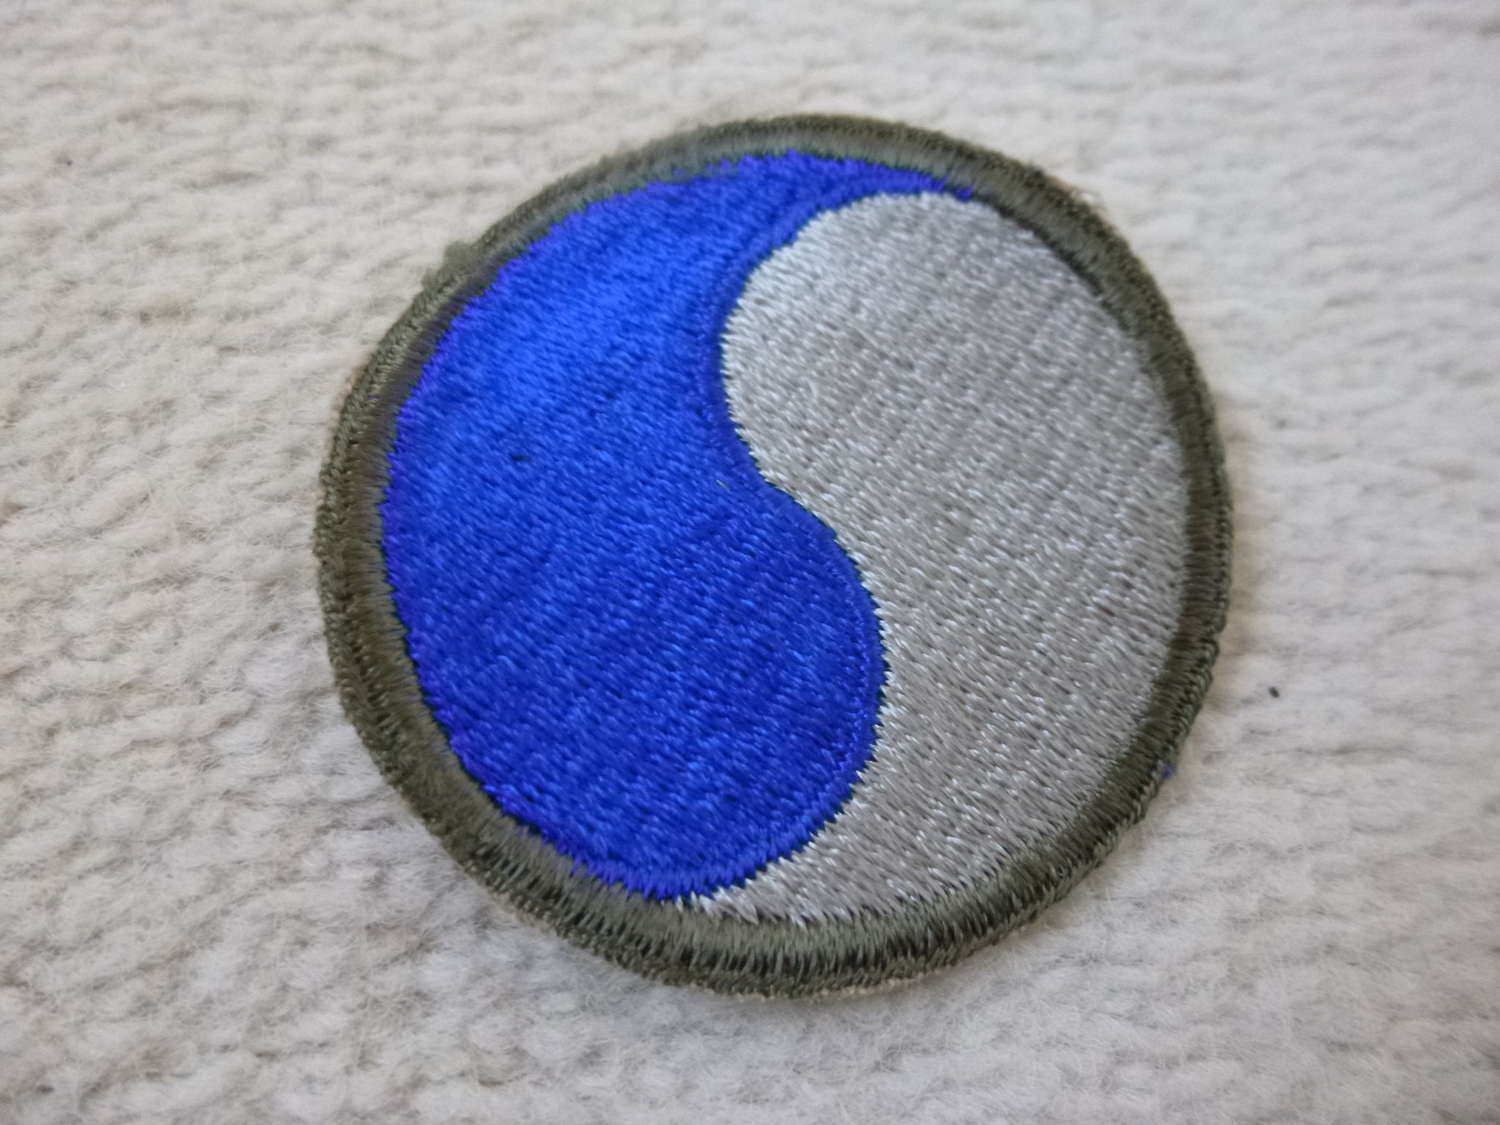 US army 29th Infantry division patch